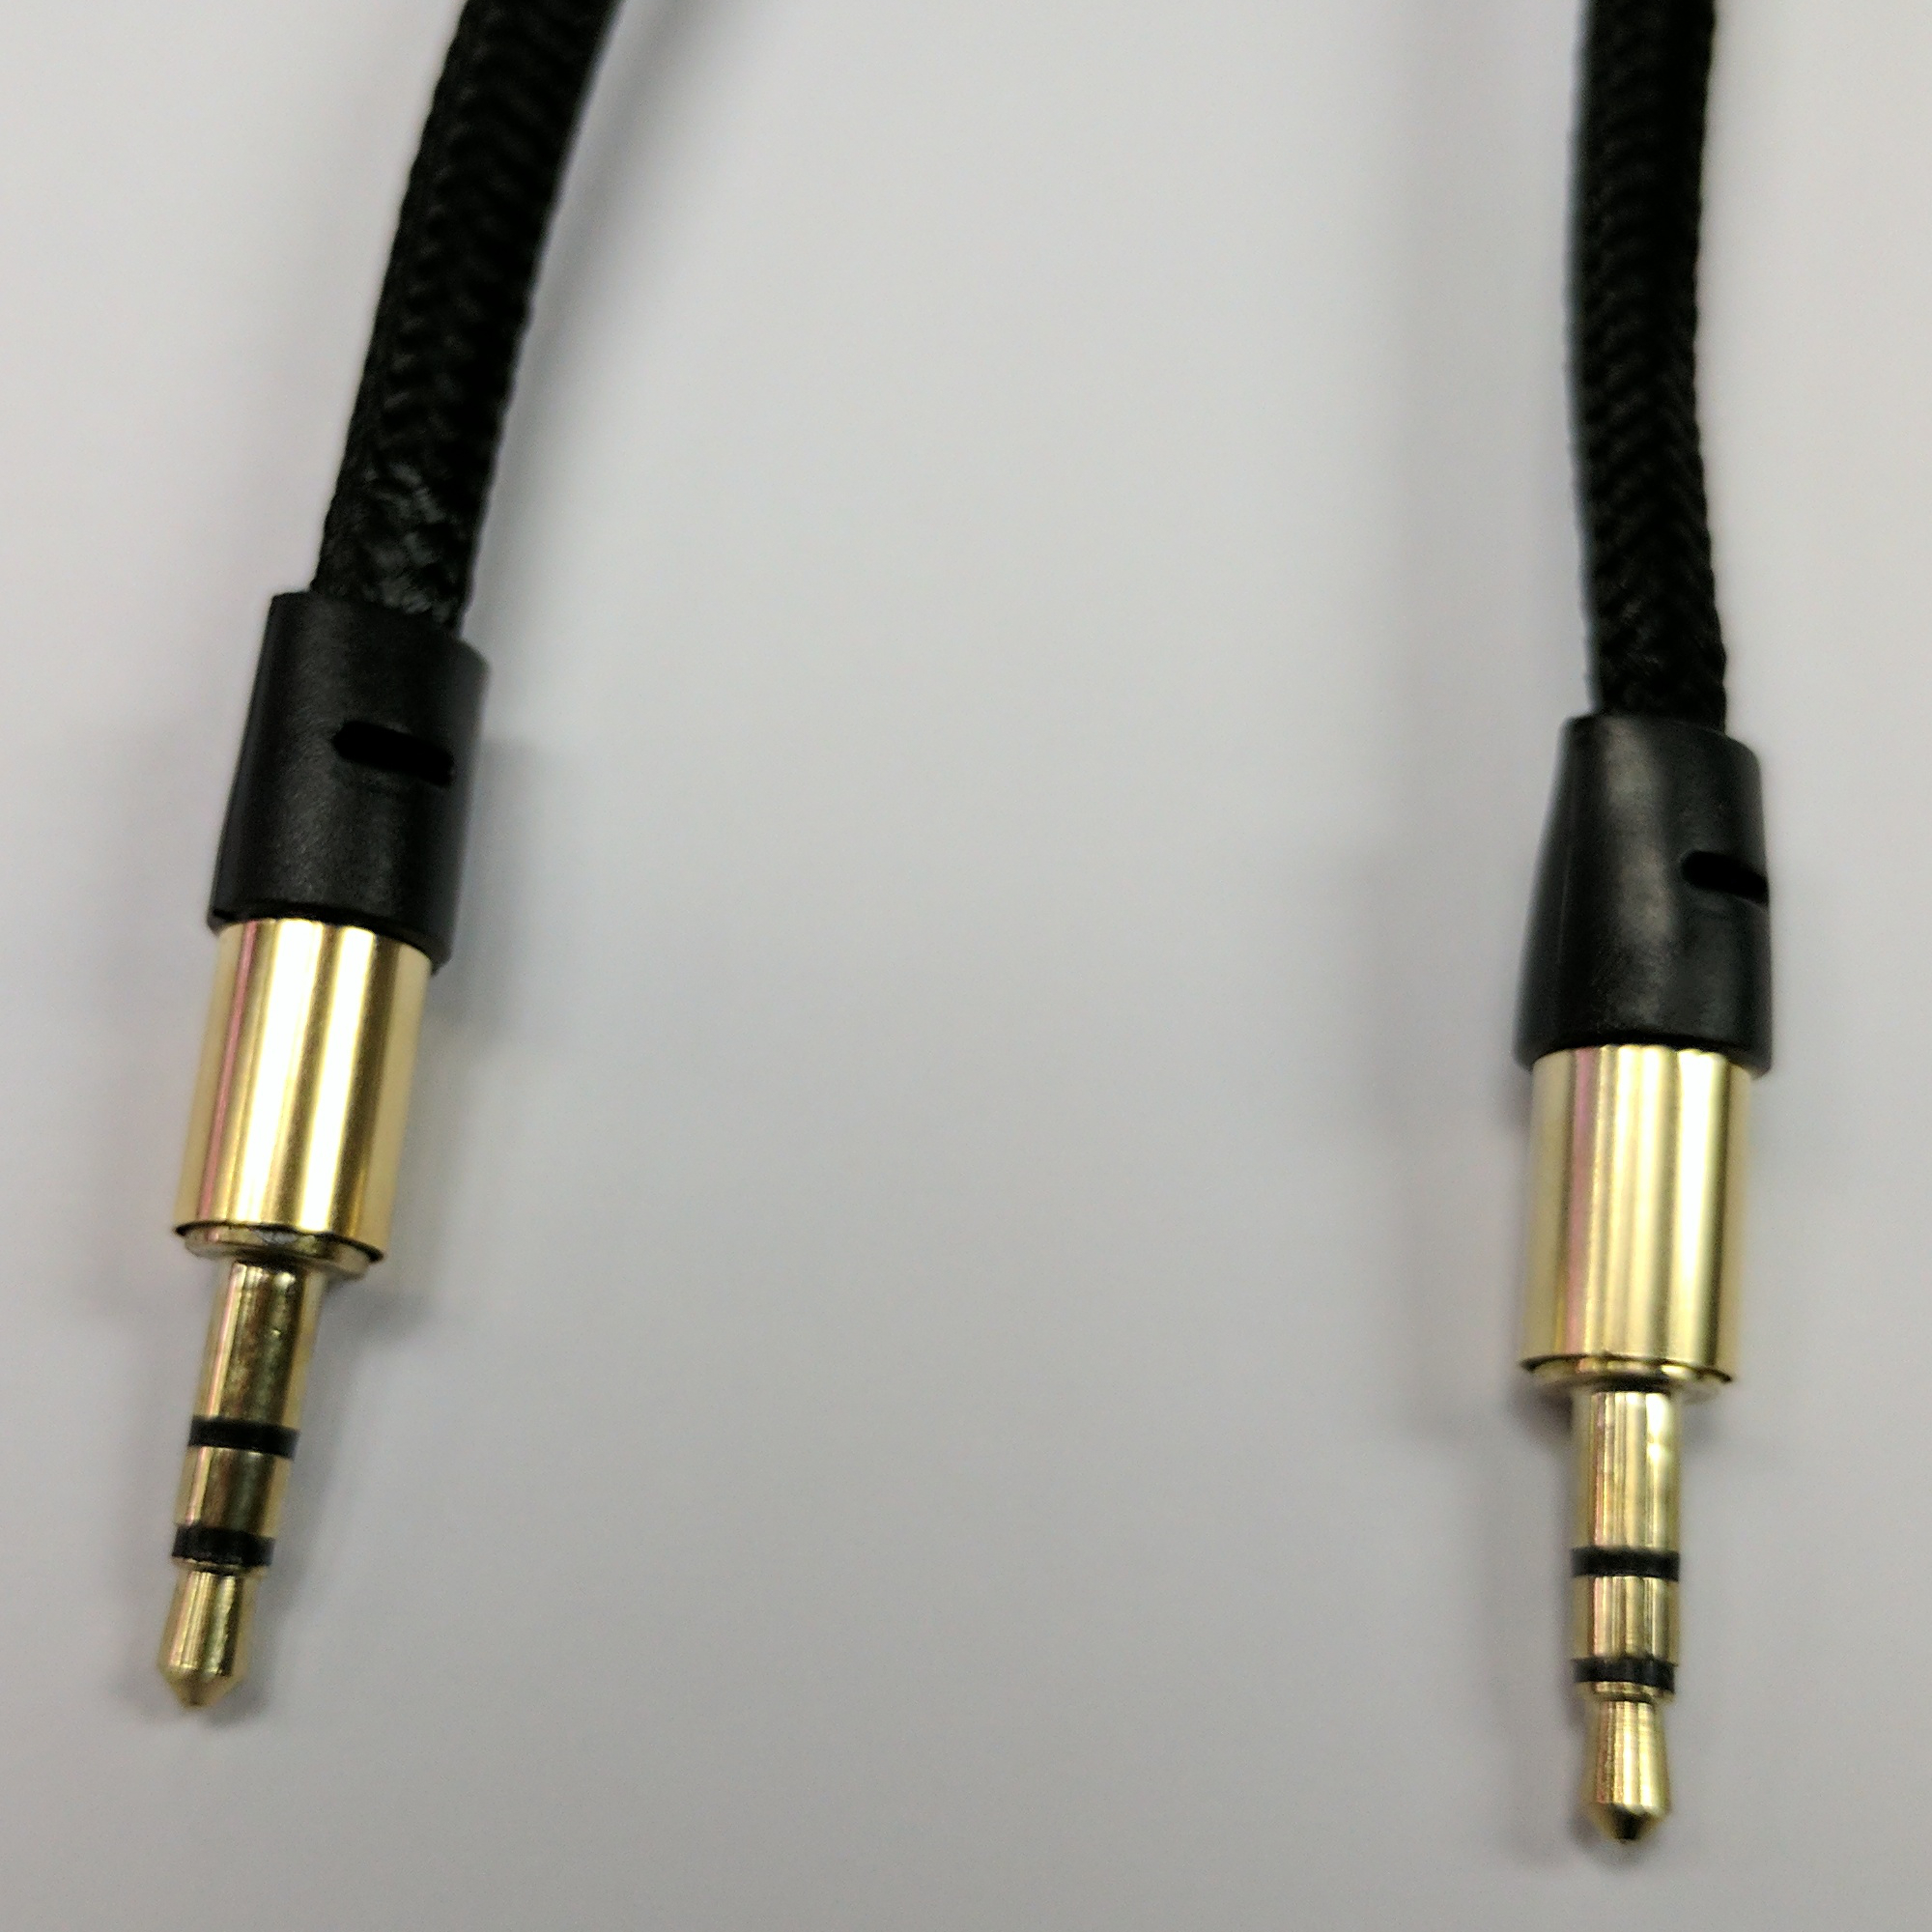 "3 Foot Braided 1/8"" TRS Audio Cable."